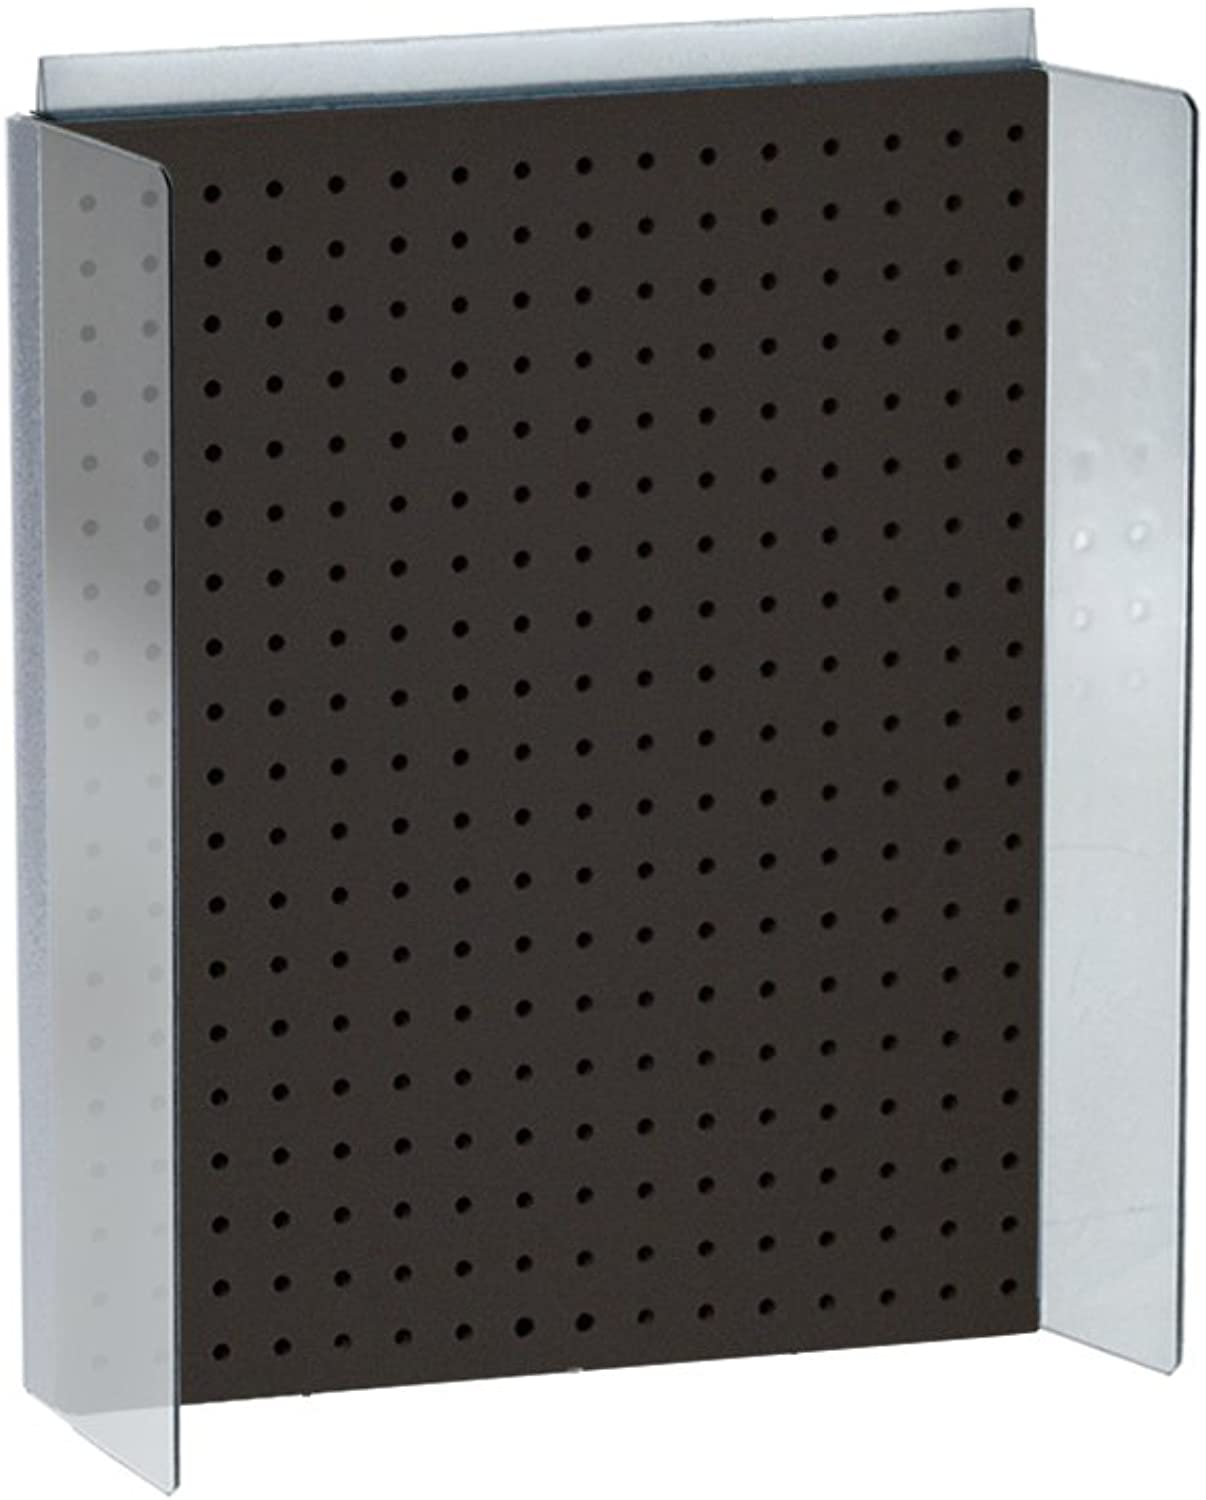 Azar Displays 700357-BLK 16  W x 20.25  H Pegboard Powerwing Display with 3  W Side Wings in Solid Black